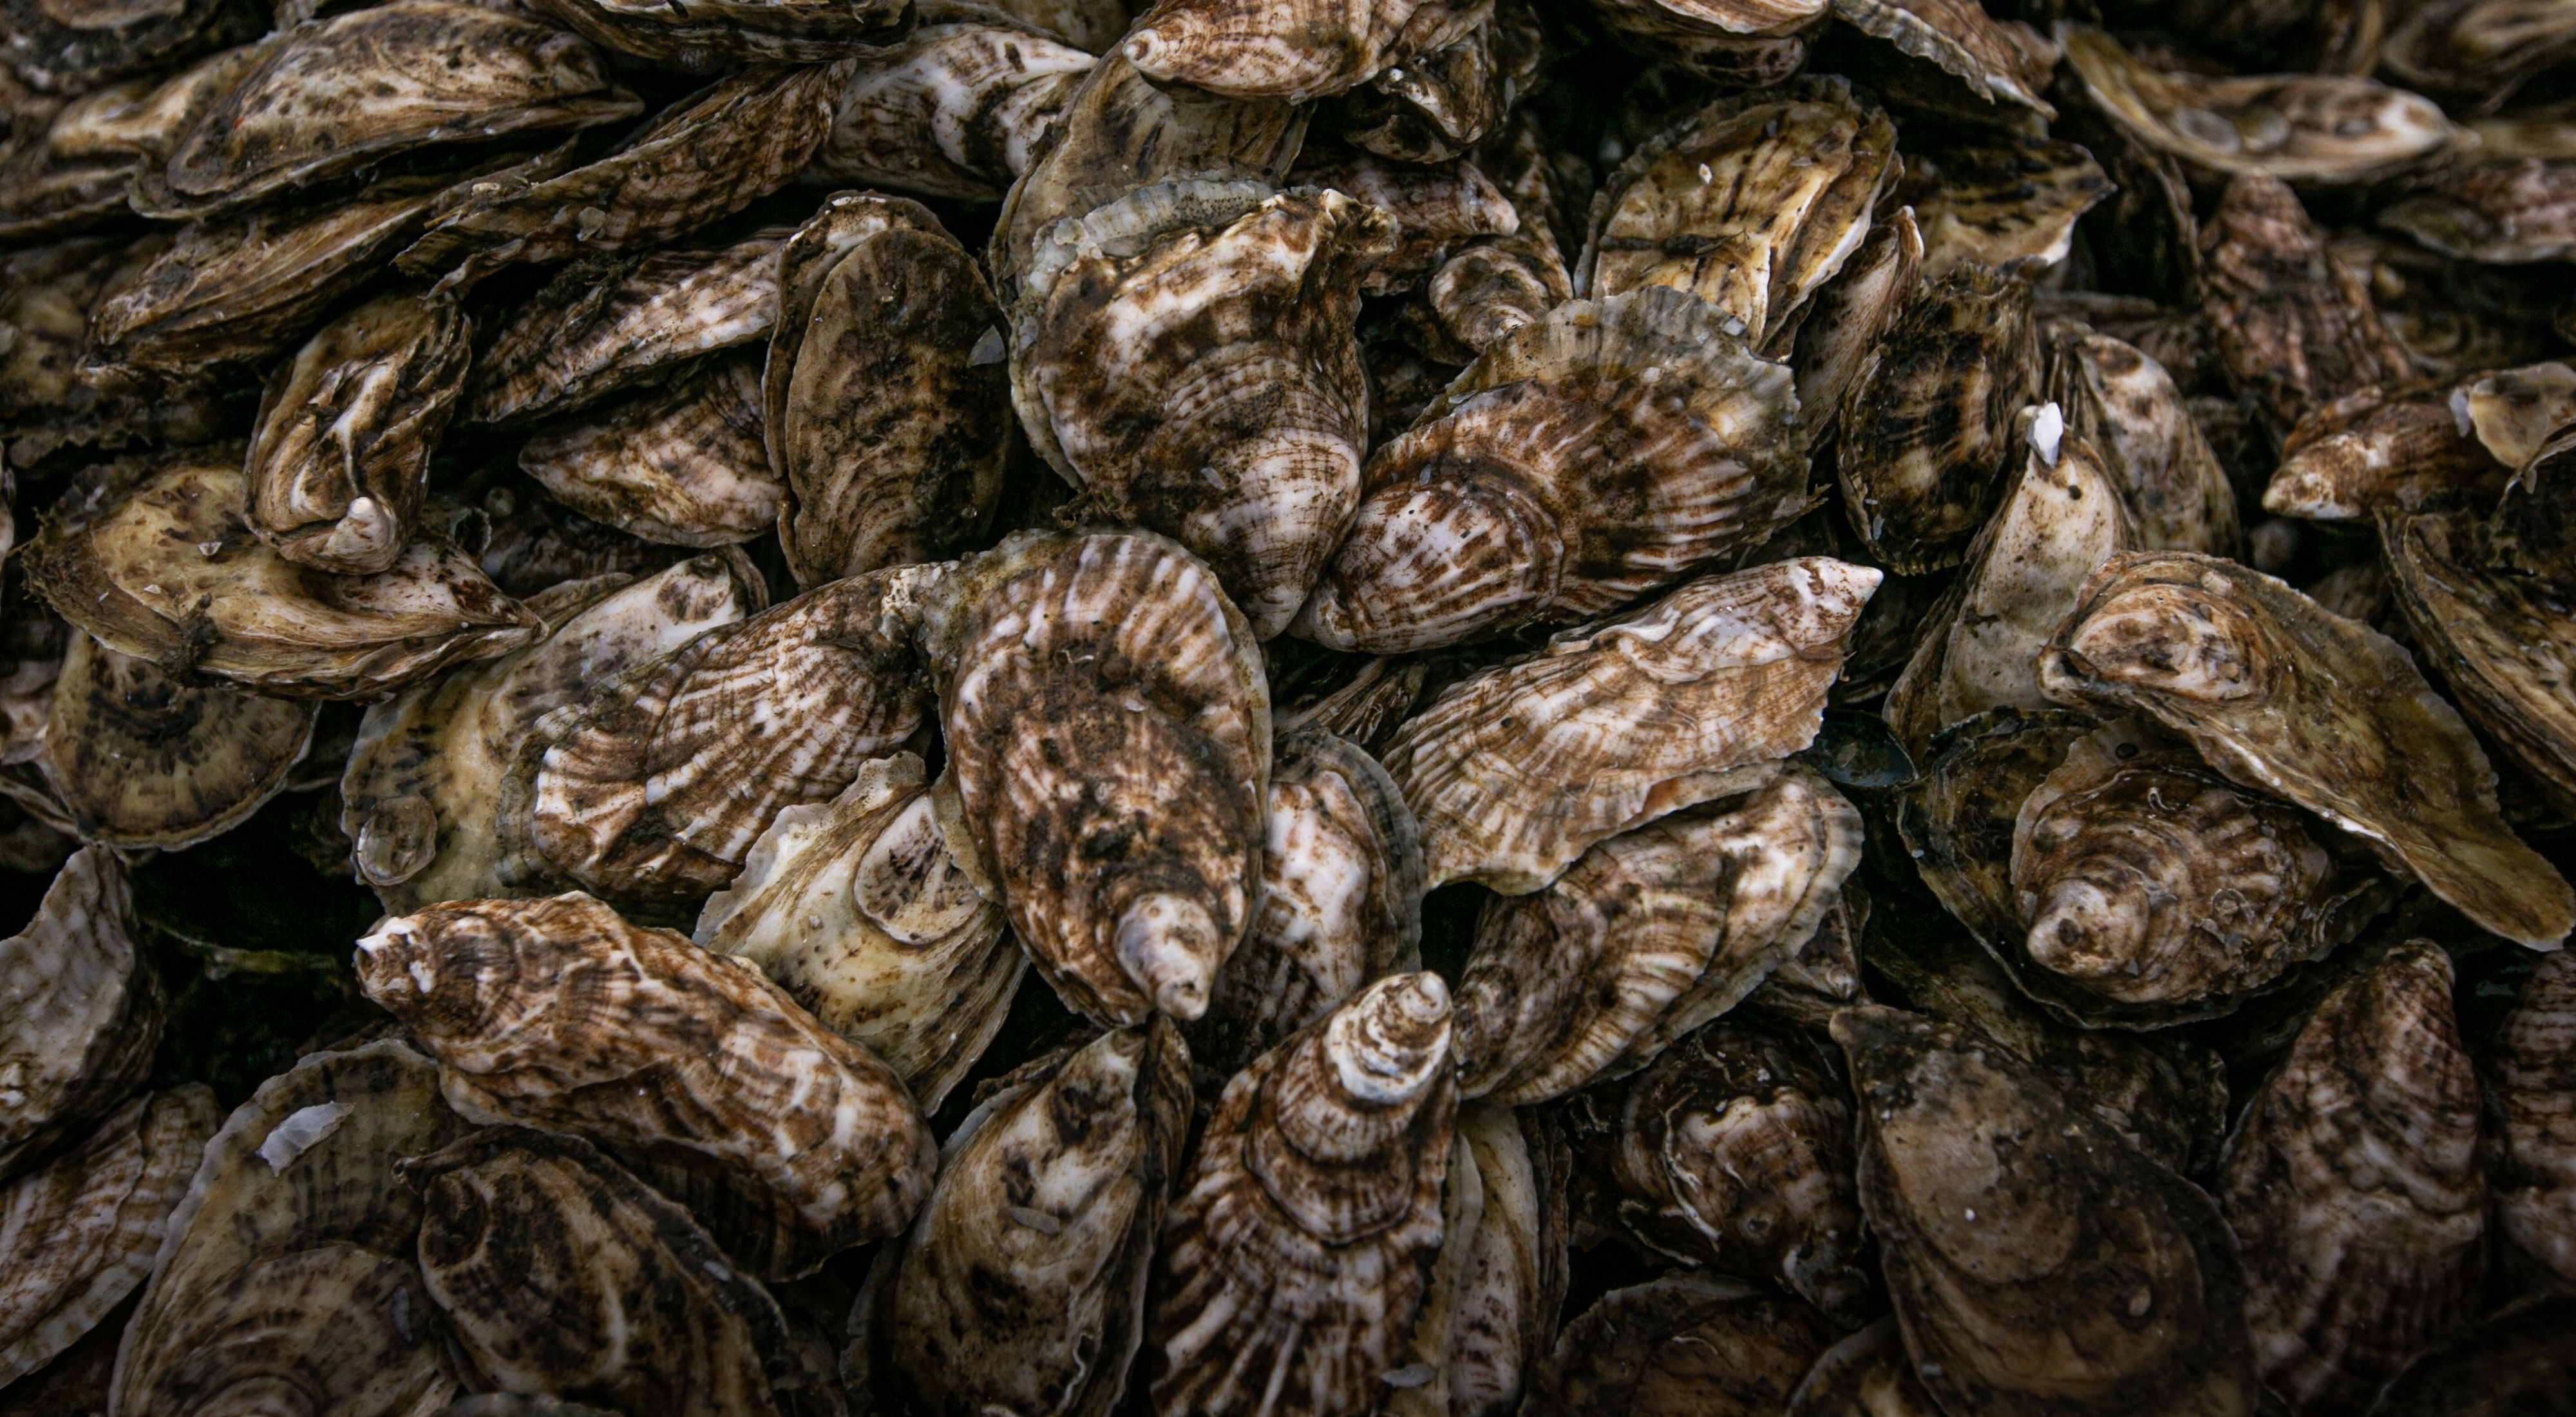 Closeup showing oysters filling the field of view.